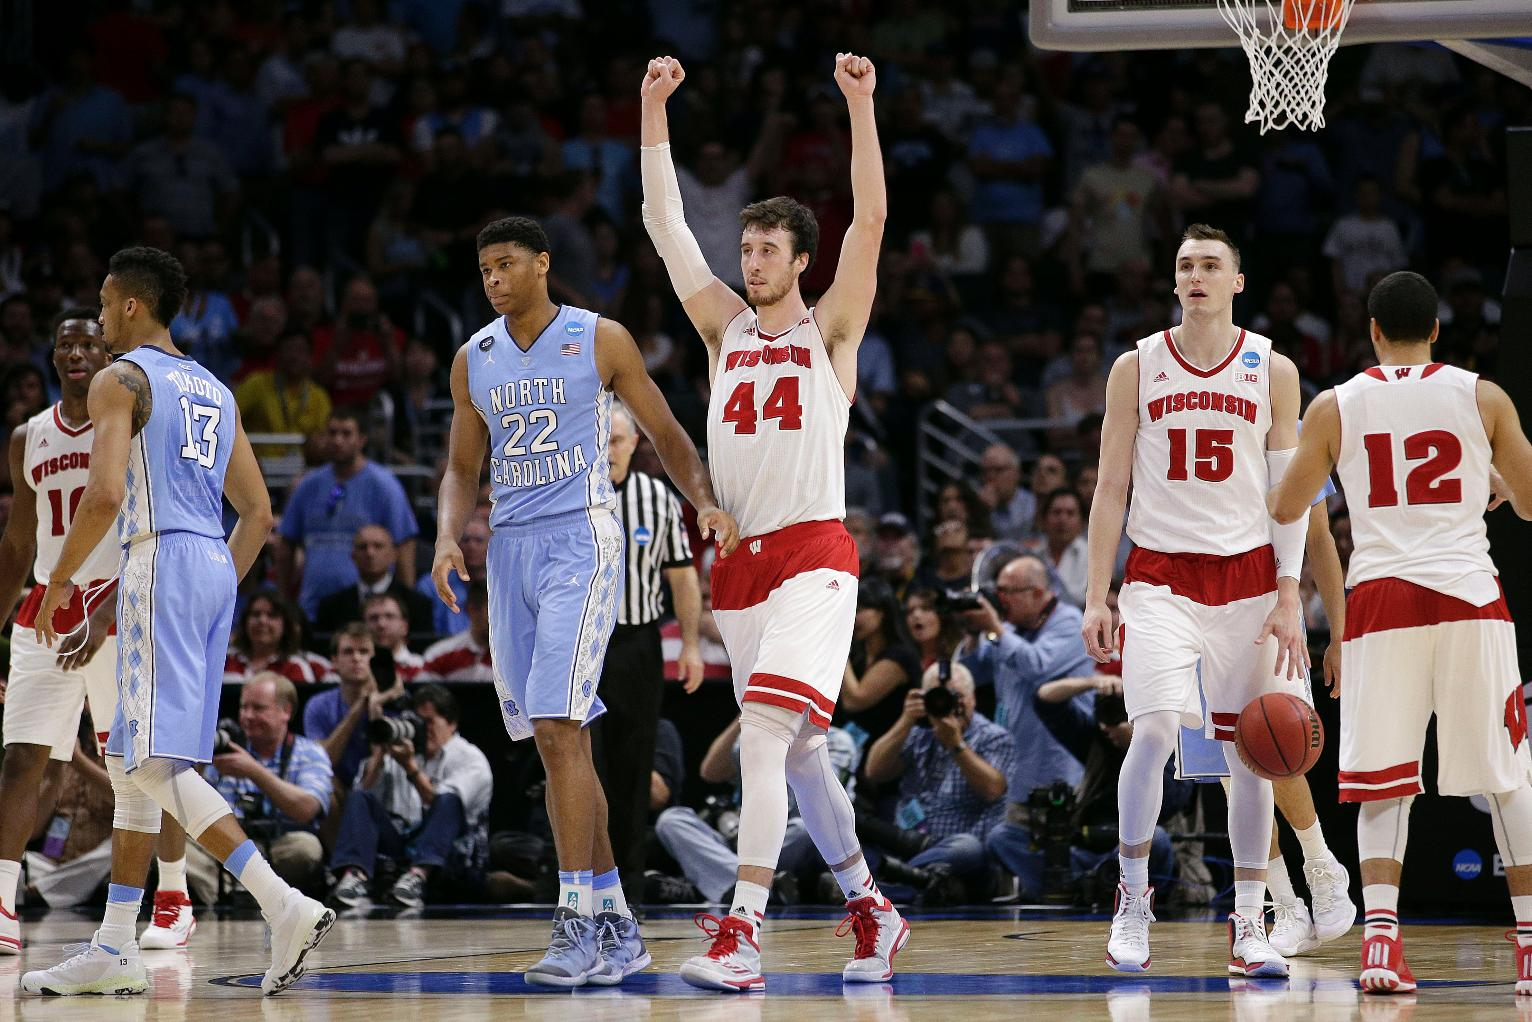 Top-seeded Wisconsin hangs on to beat North Carolina 79-72 ...